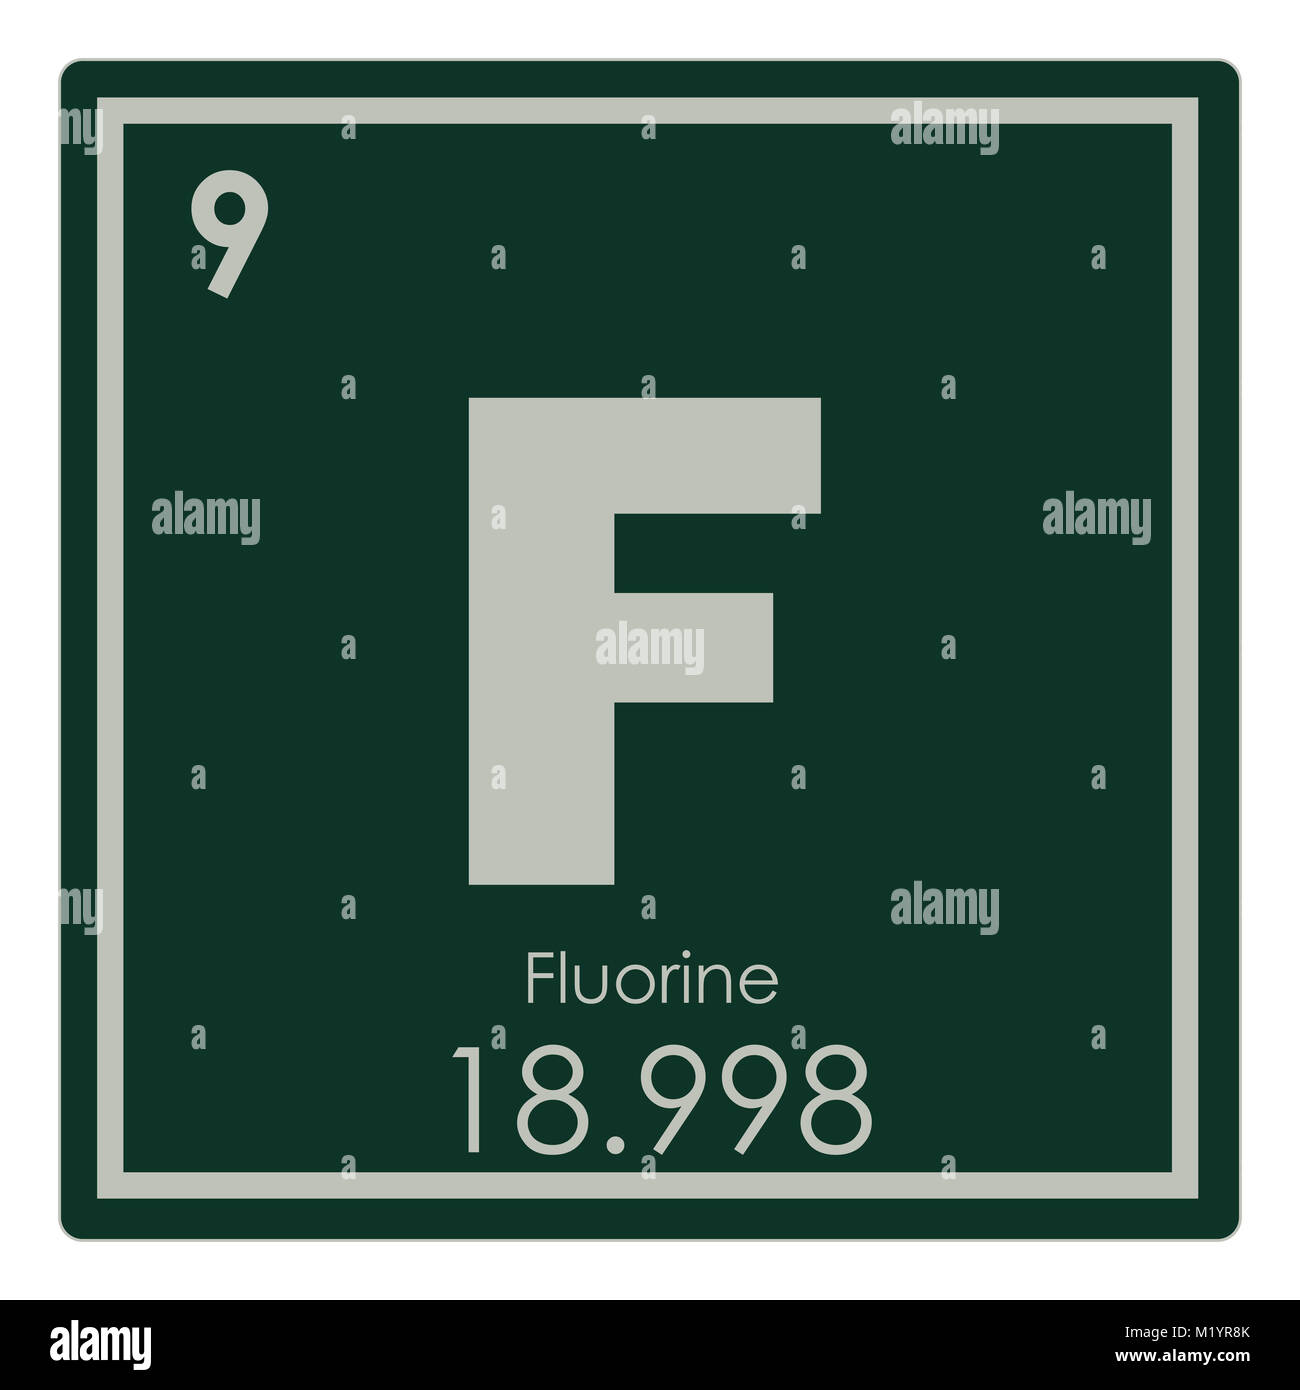 Element symbol f image collections meaning of text symbols fluorine chemical element periodic table science symbol stock photo urtaz Images